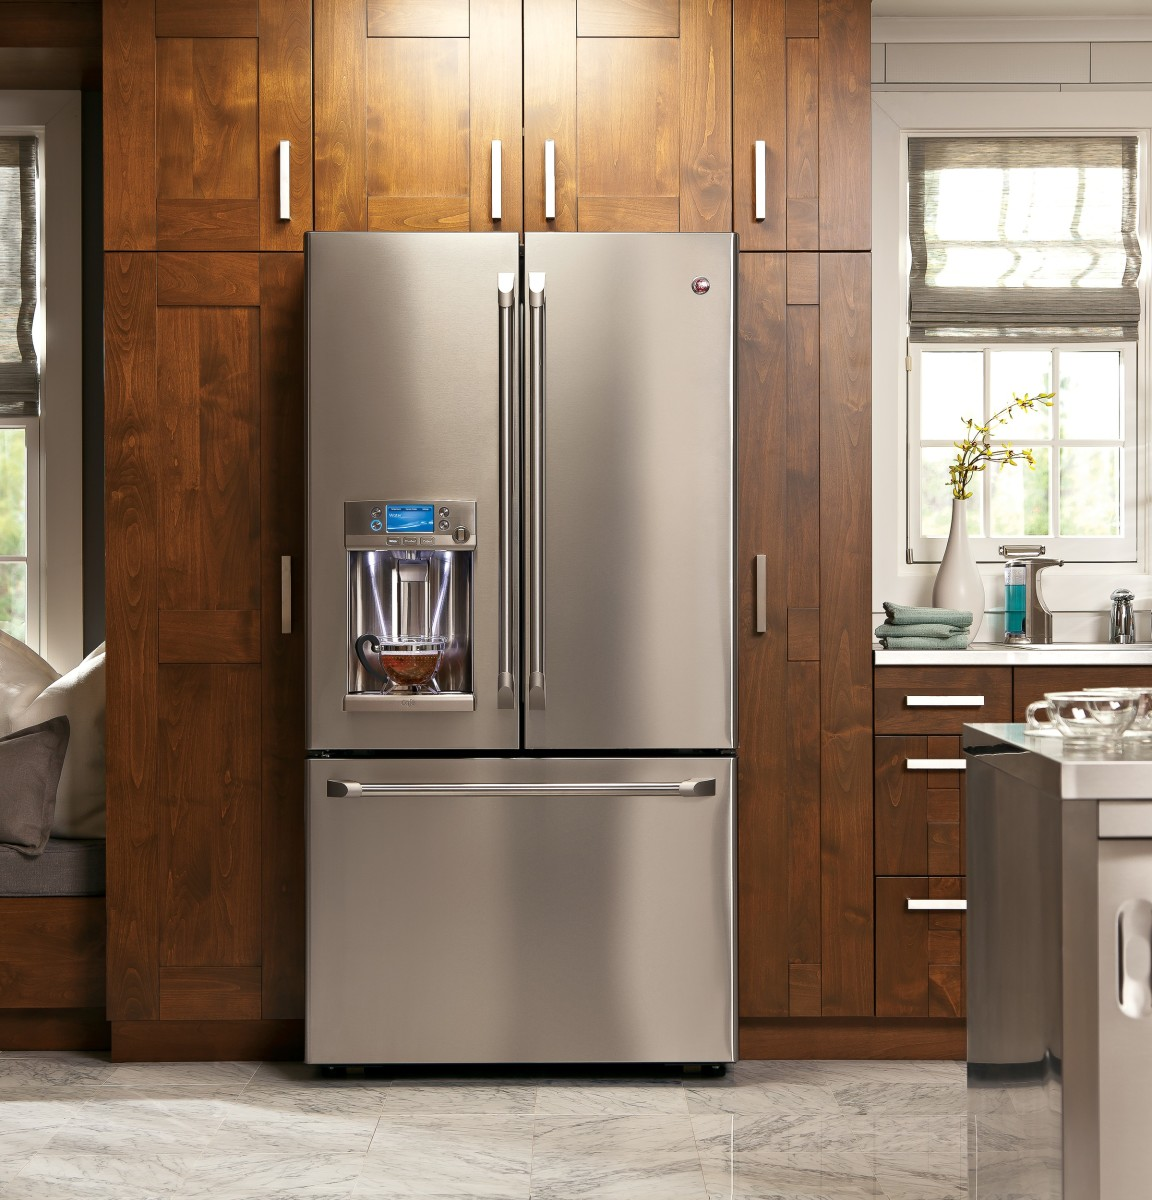 Cafe French Door refrigerator